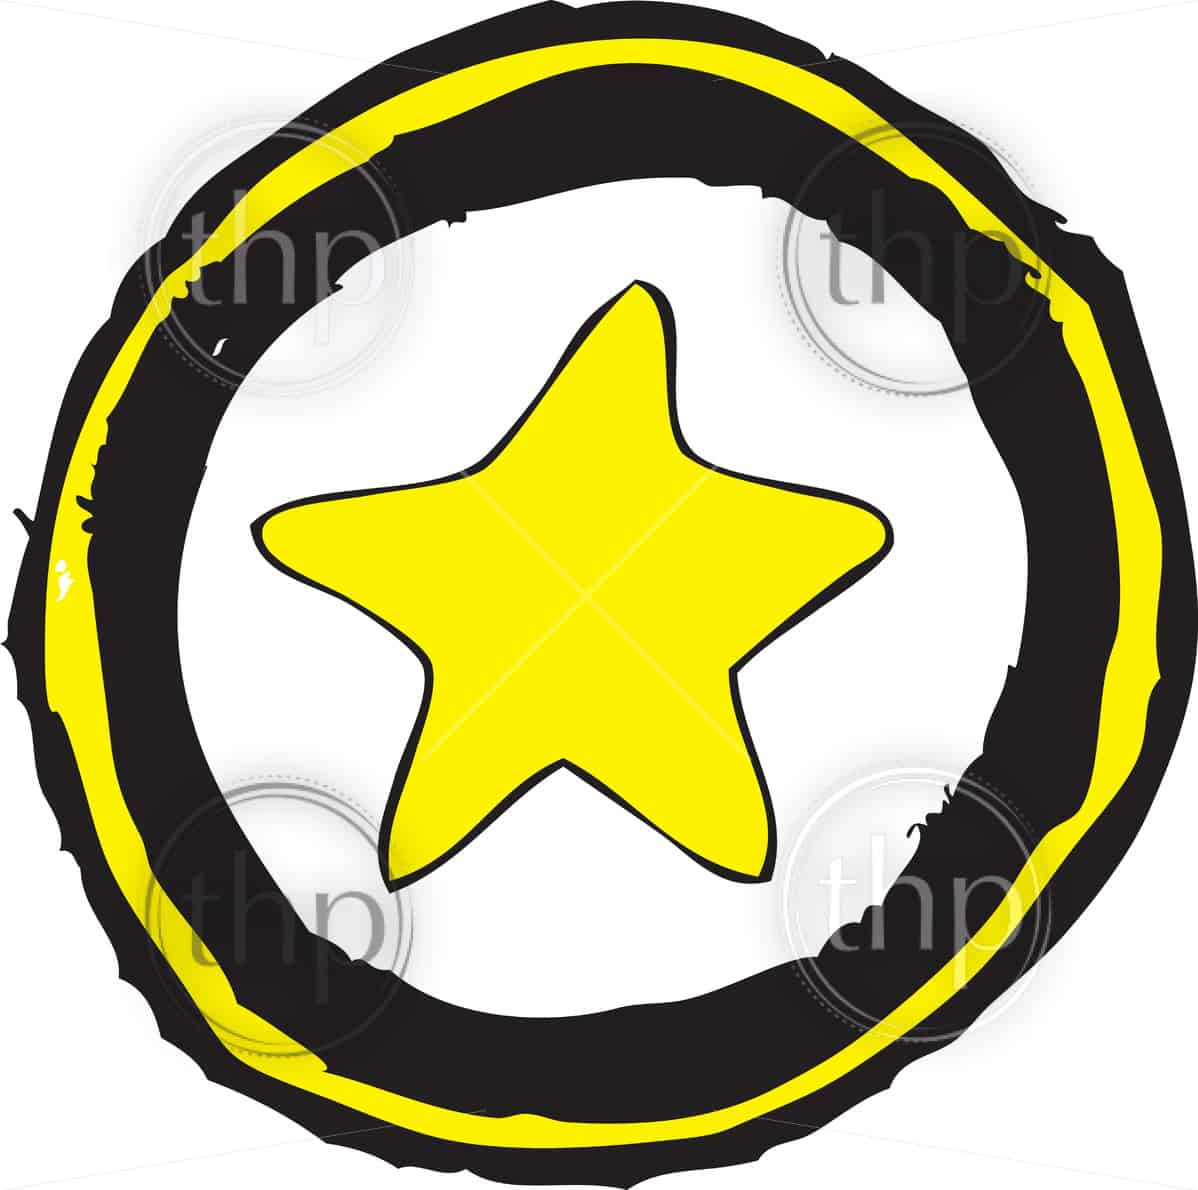 Star drawn in a rough hand drawn sketch style vector